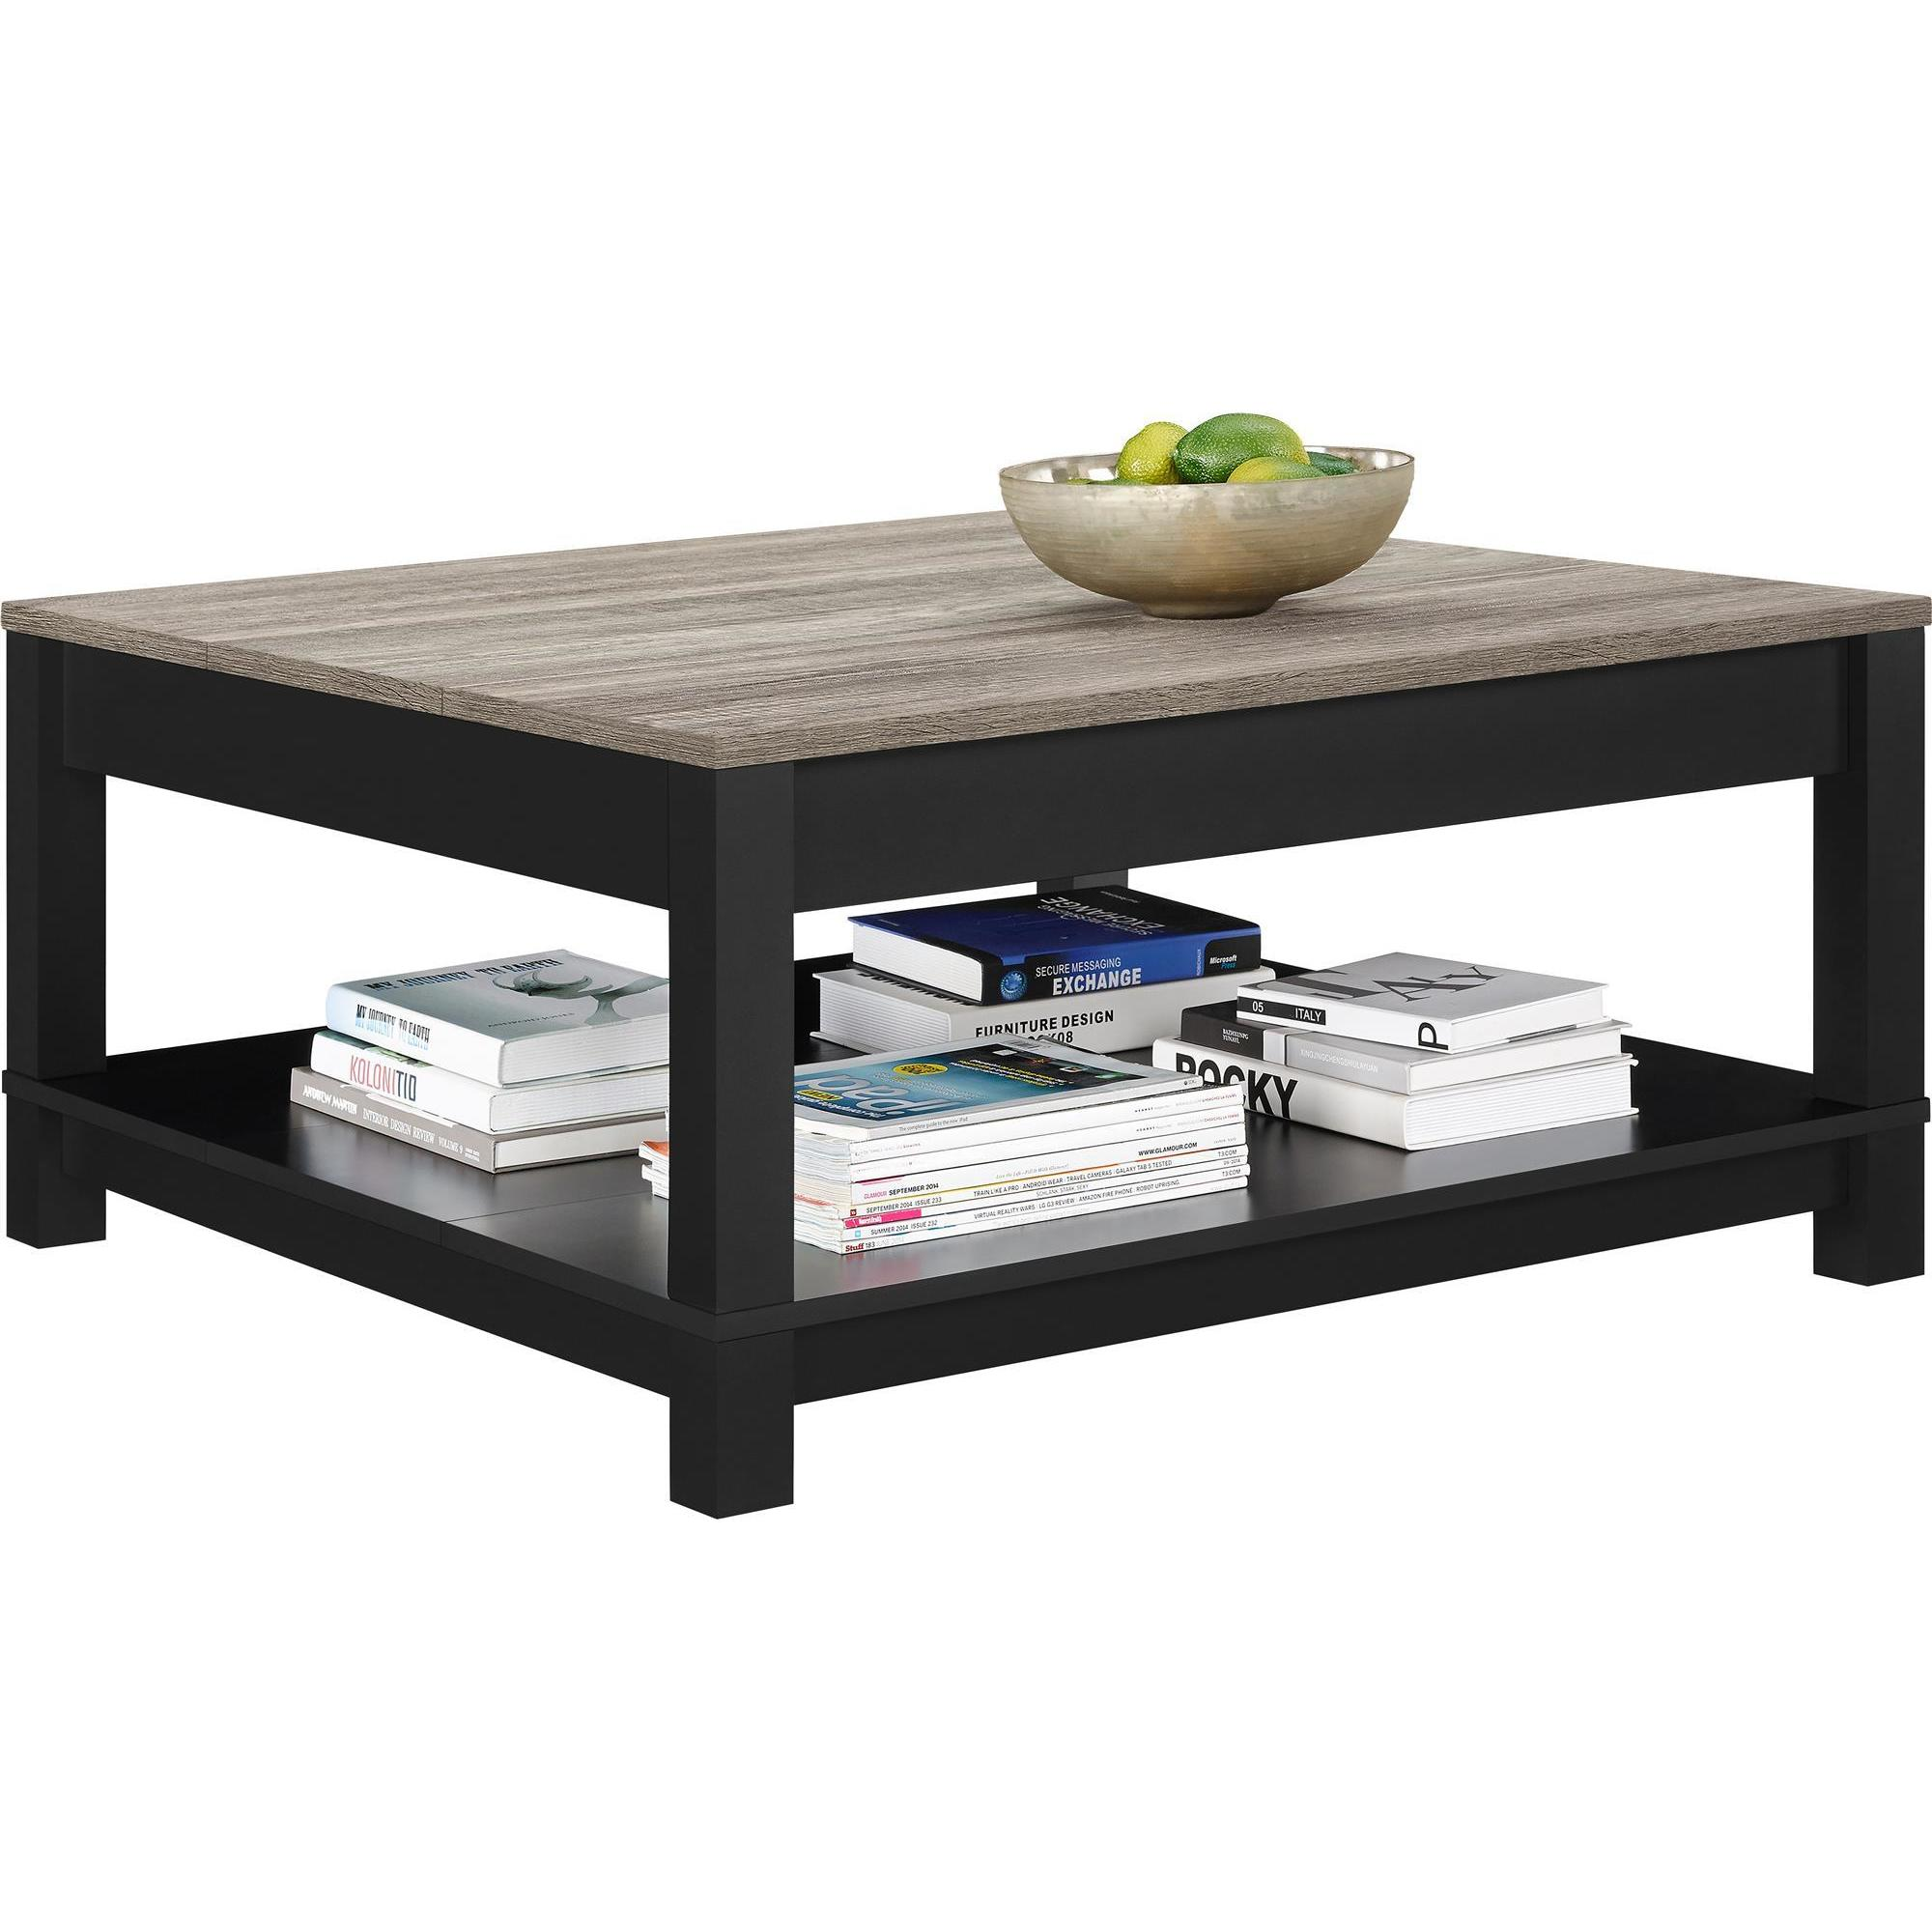 Details This Coffee Table